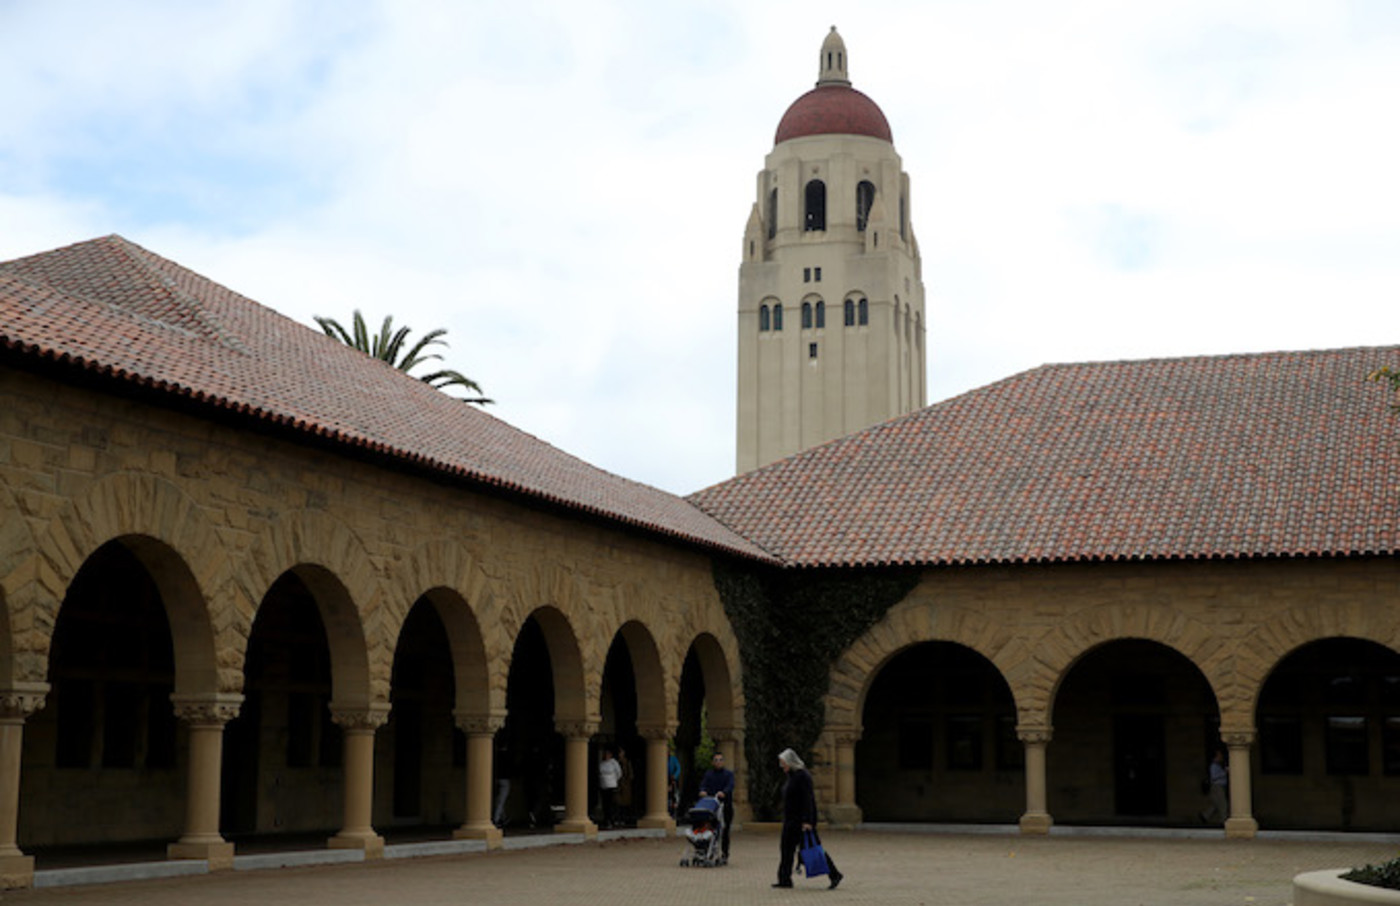 People walk by Hoover Tower on the Stanford University campus.